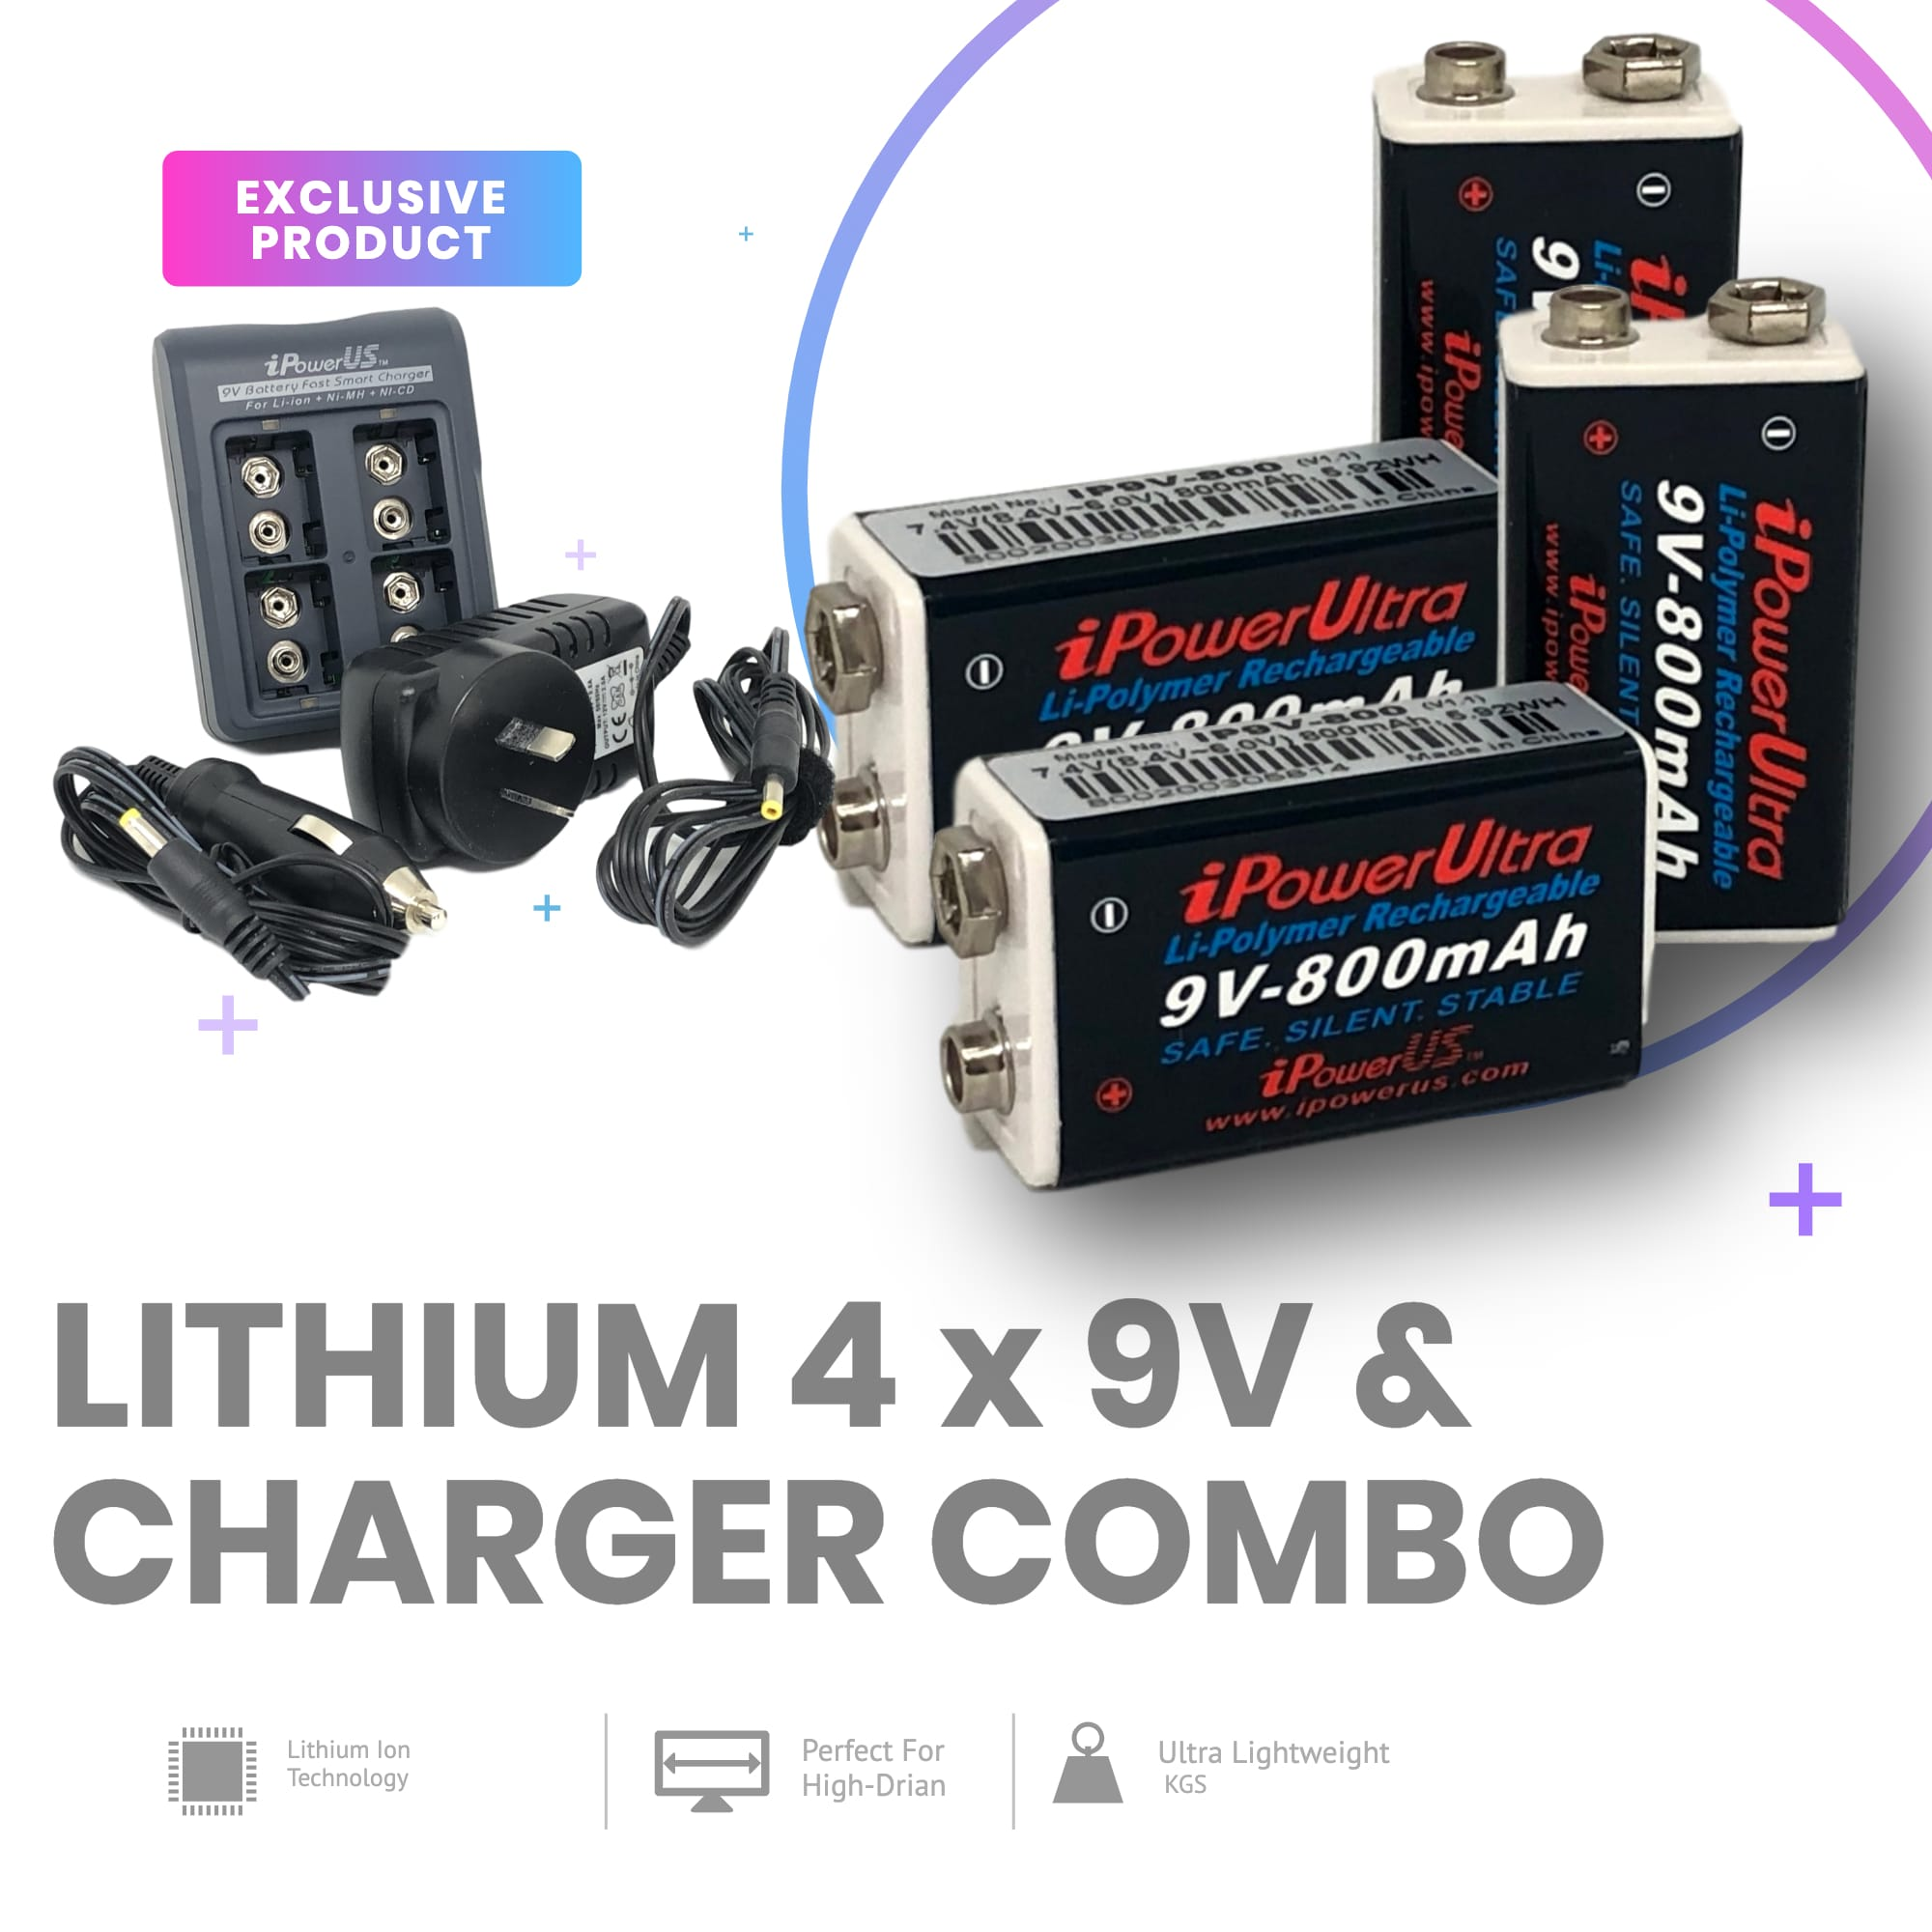 iPOWER 9V Combo Comes With 4 x 9V and 1 x 9V Charger